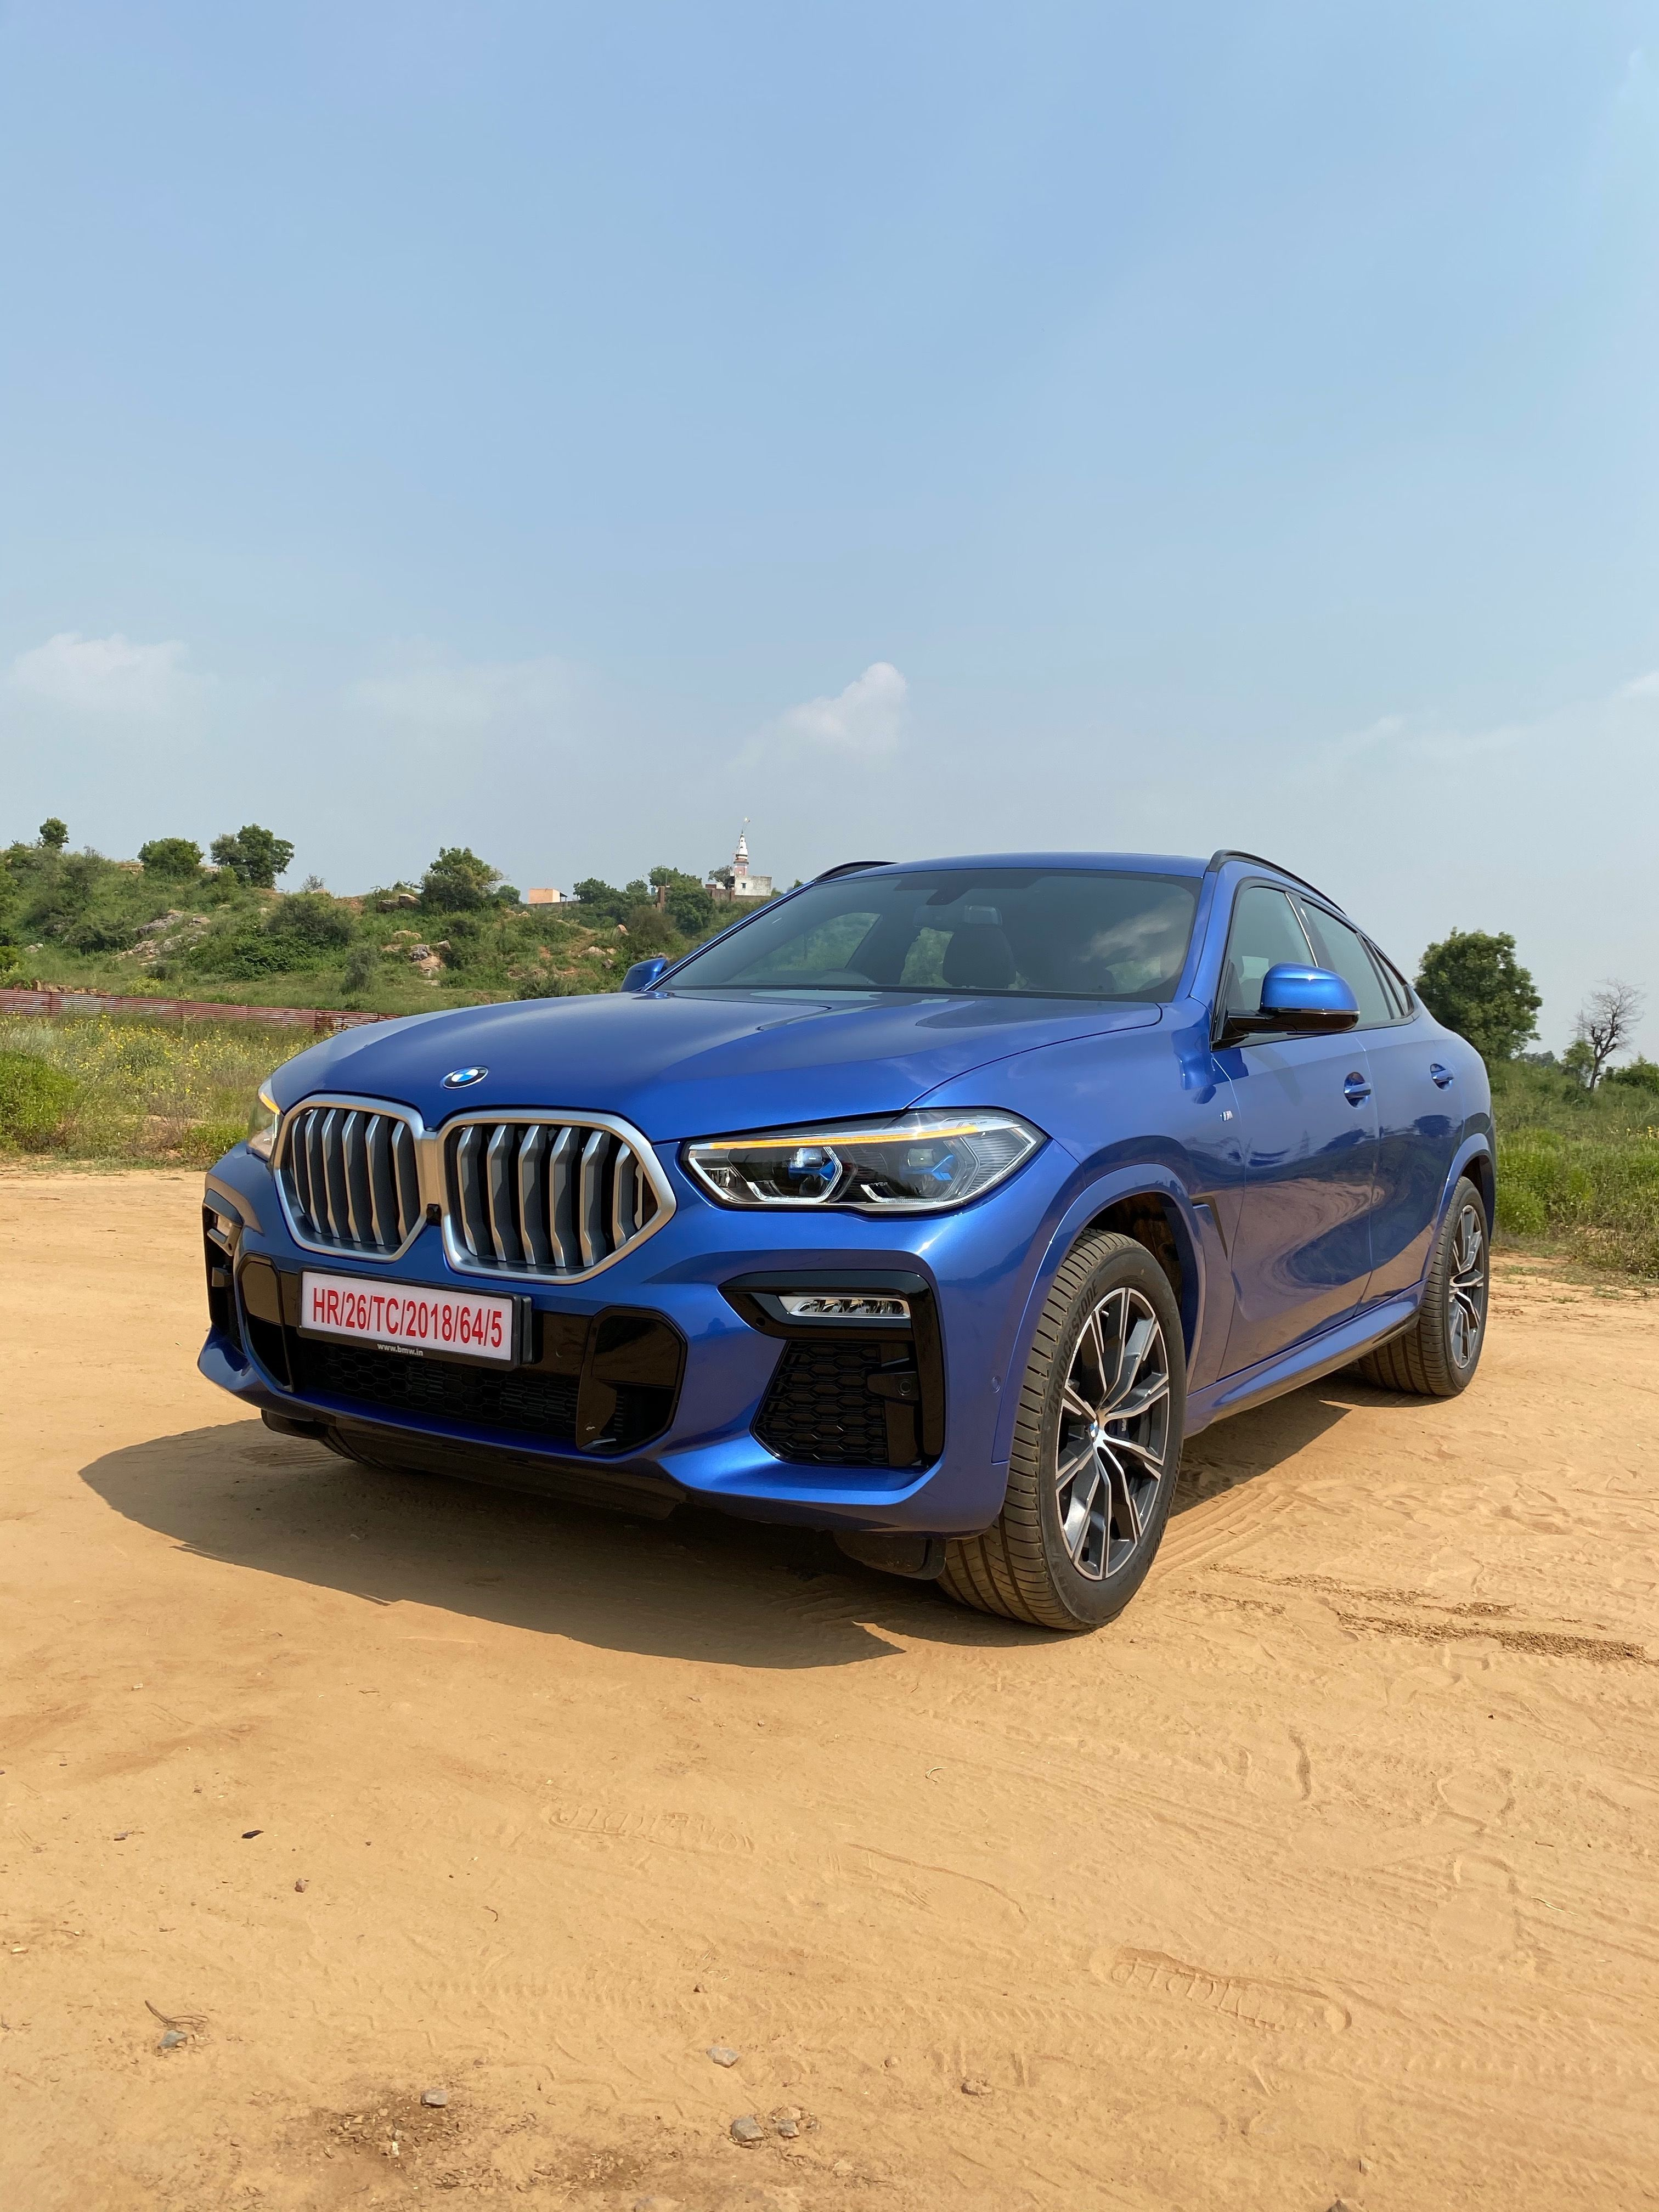 Bmw X6 Xdrive40i M Sport 2020 1 Crore Real Life Review 2021